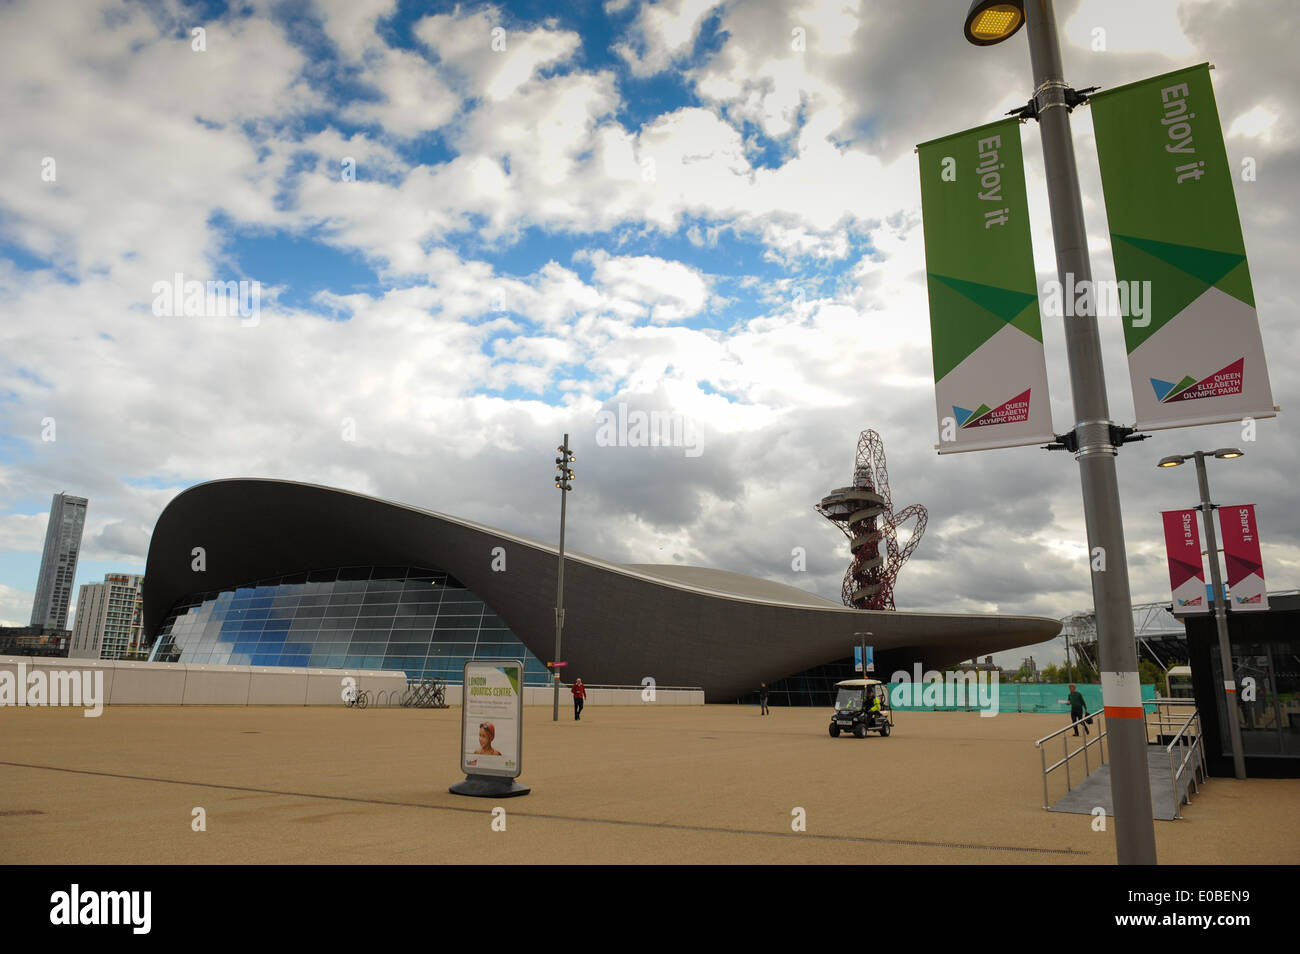 General view of the London Aquatic Centre, Queen Elizabeth Olympic Park - Stock Image